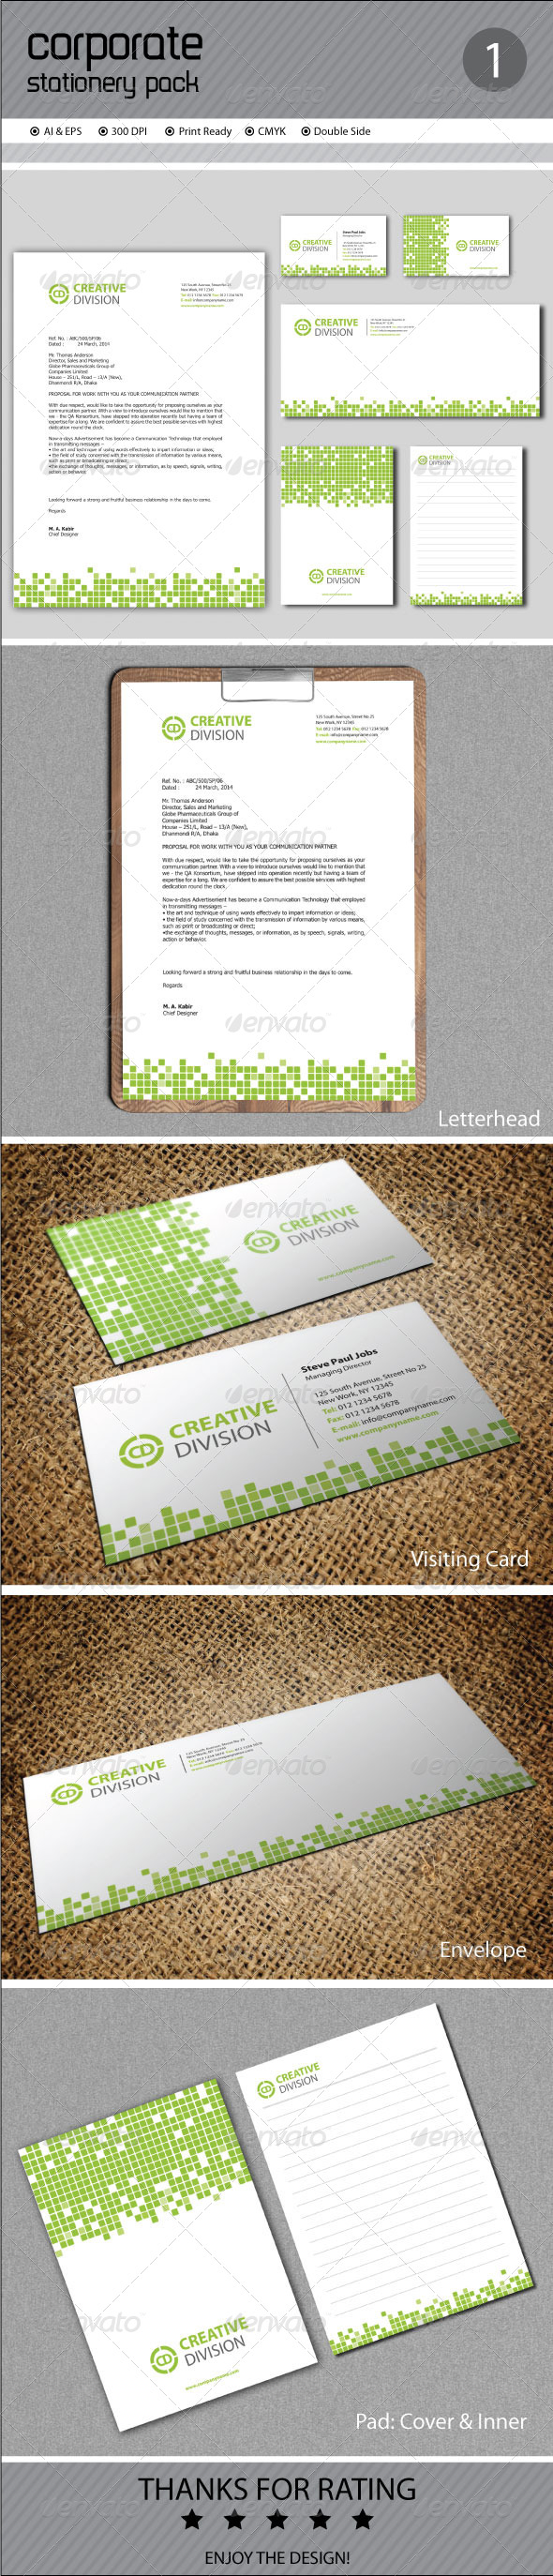 Corporate Stationery - Stationery Print Templates